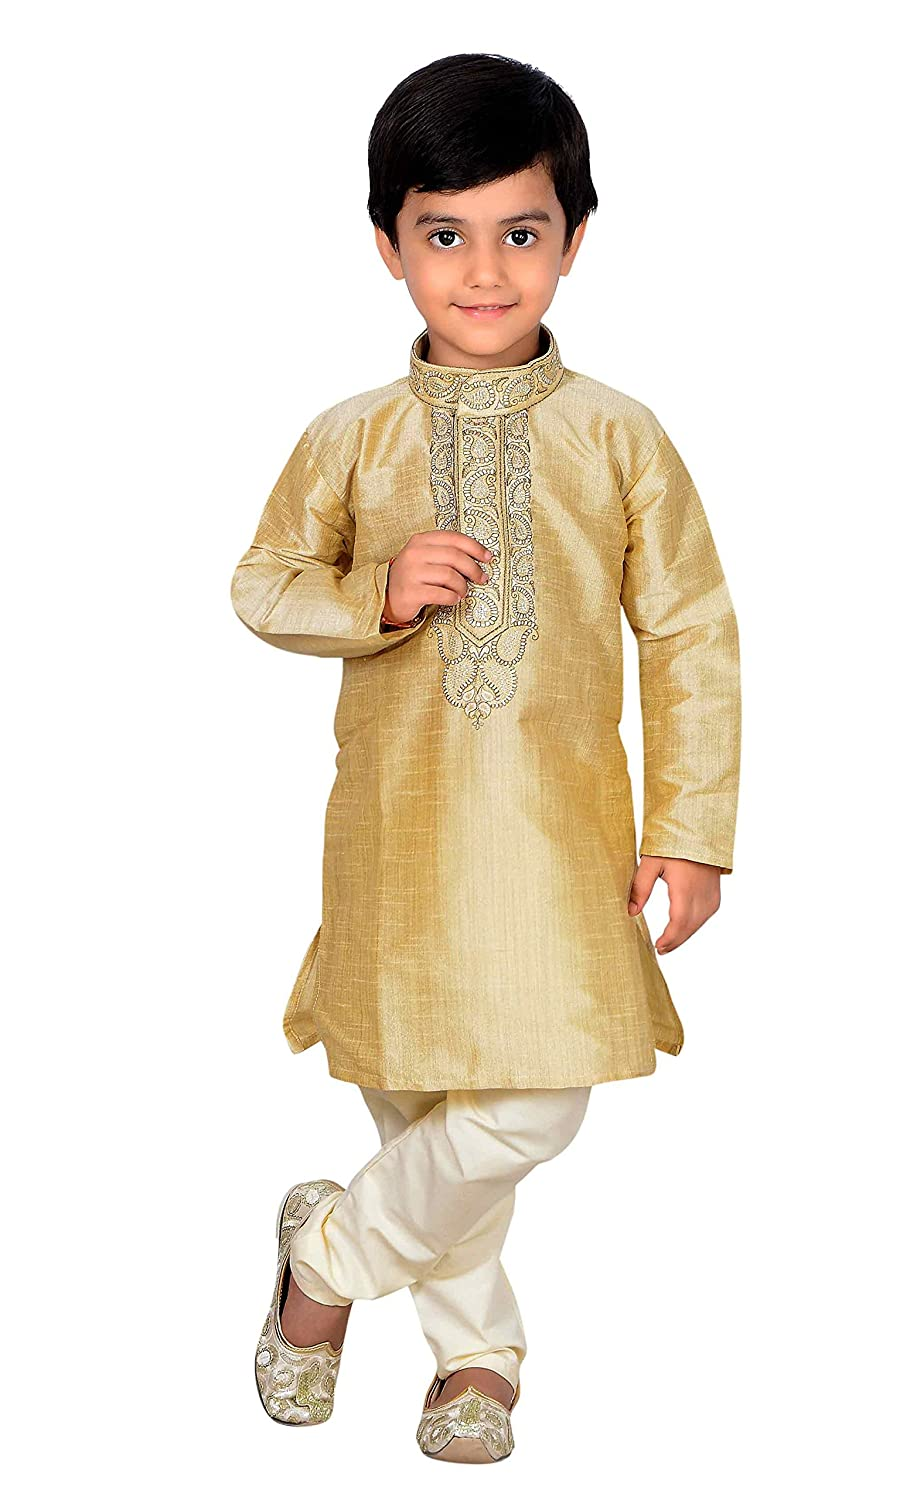 Gold Indian Pakistani Boys Sherwani kids Kurta pajama Bollywood party outfit 869 Gold Kurta Set - 869